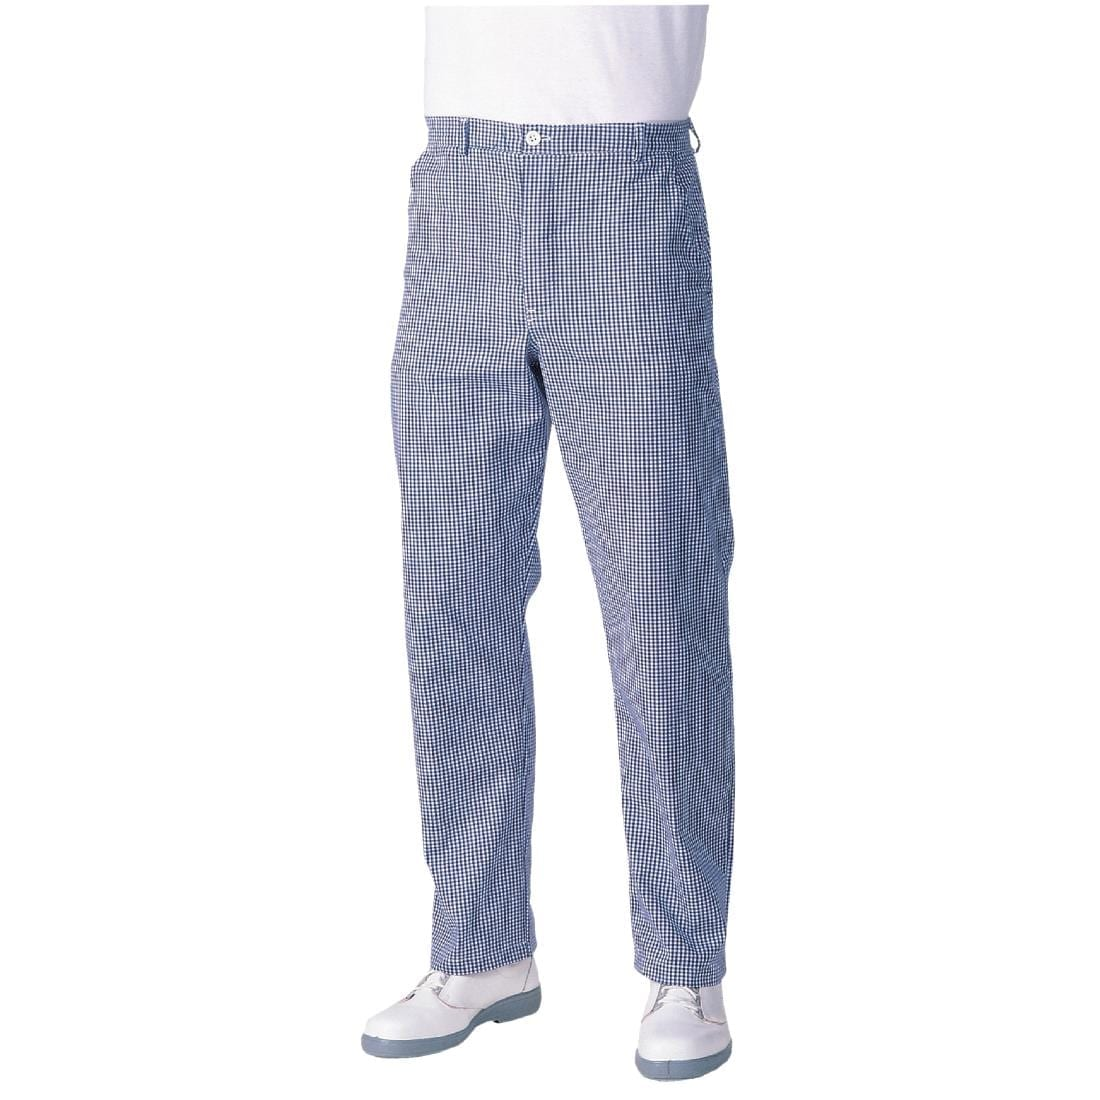 Whites Mens Chef Trousers Blue and White Check Extra Long 38in